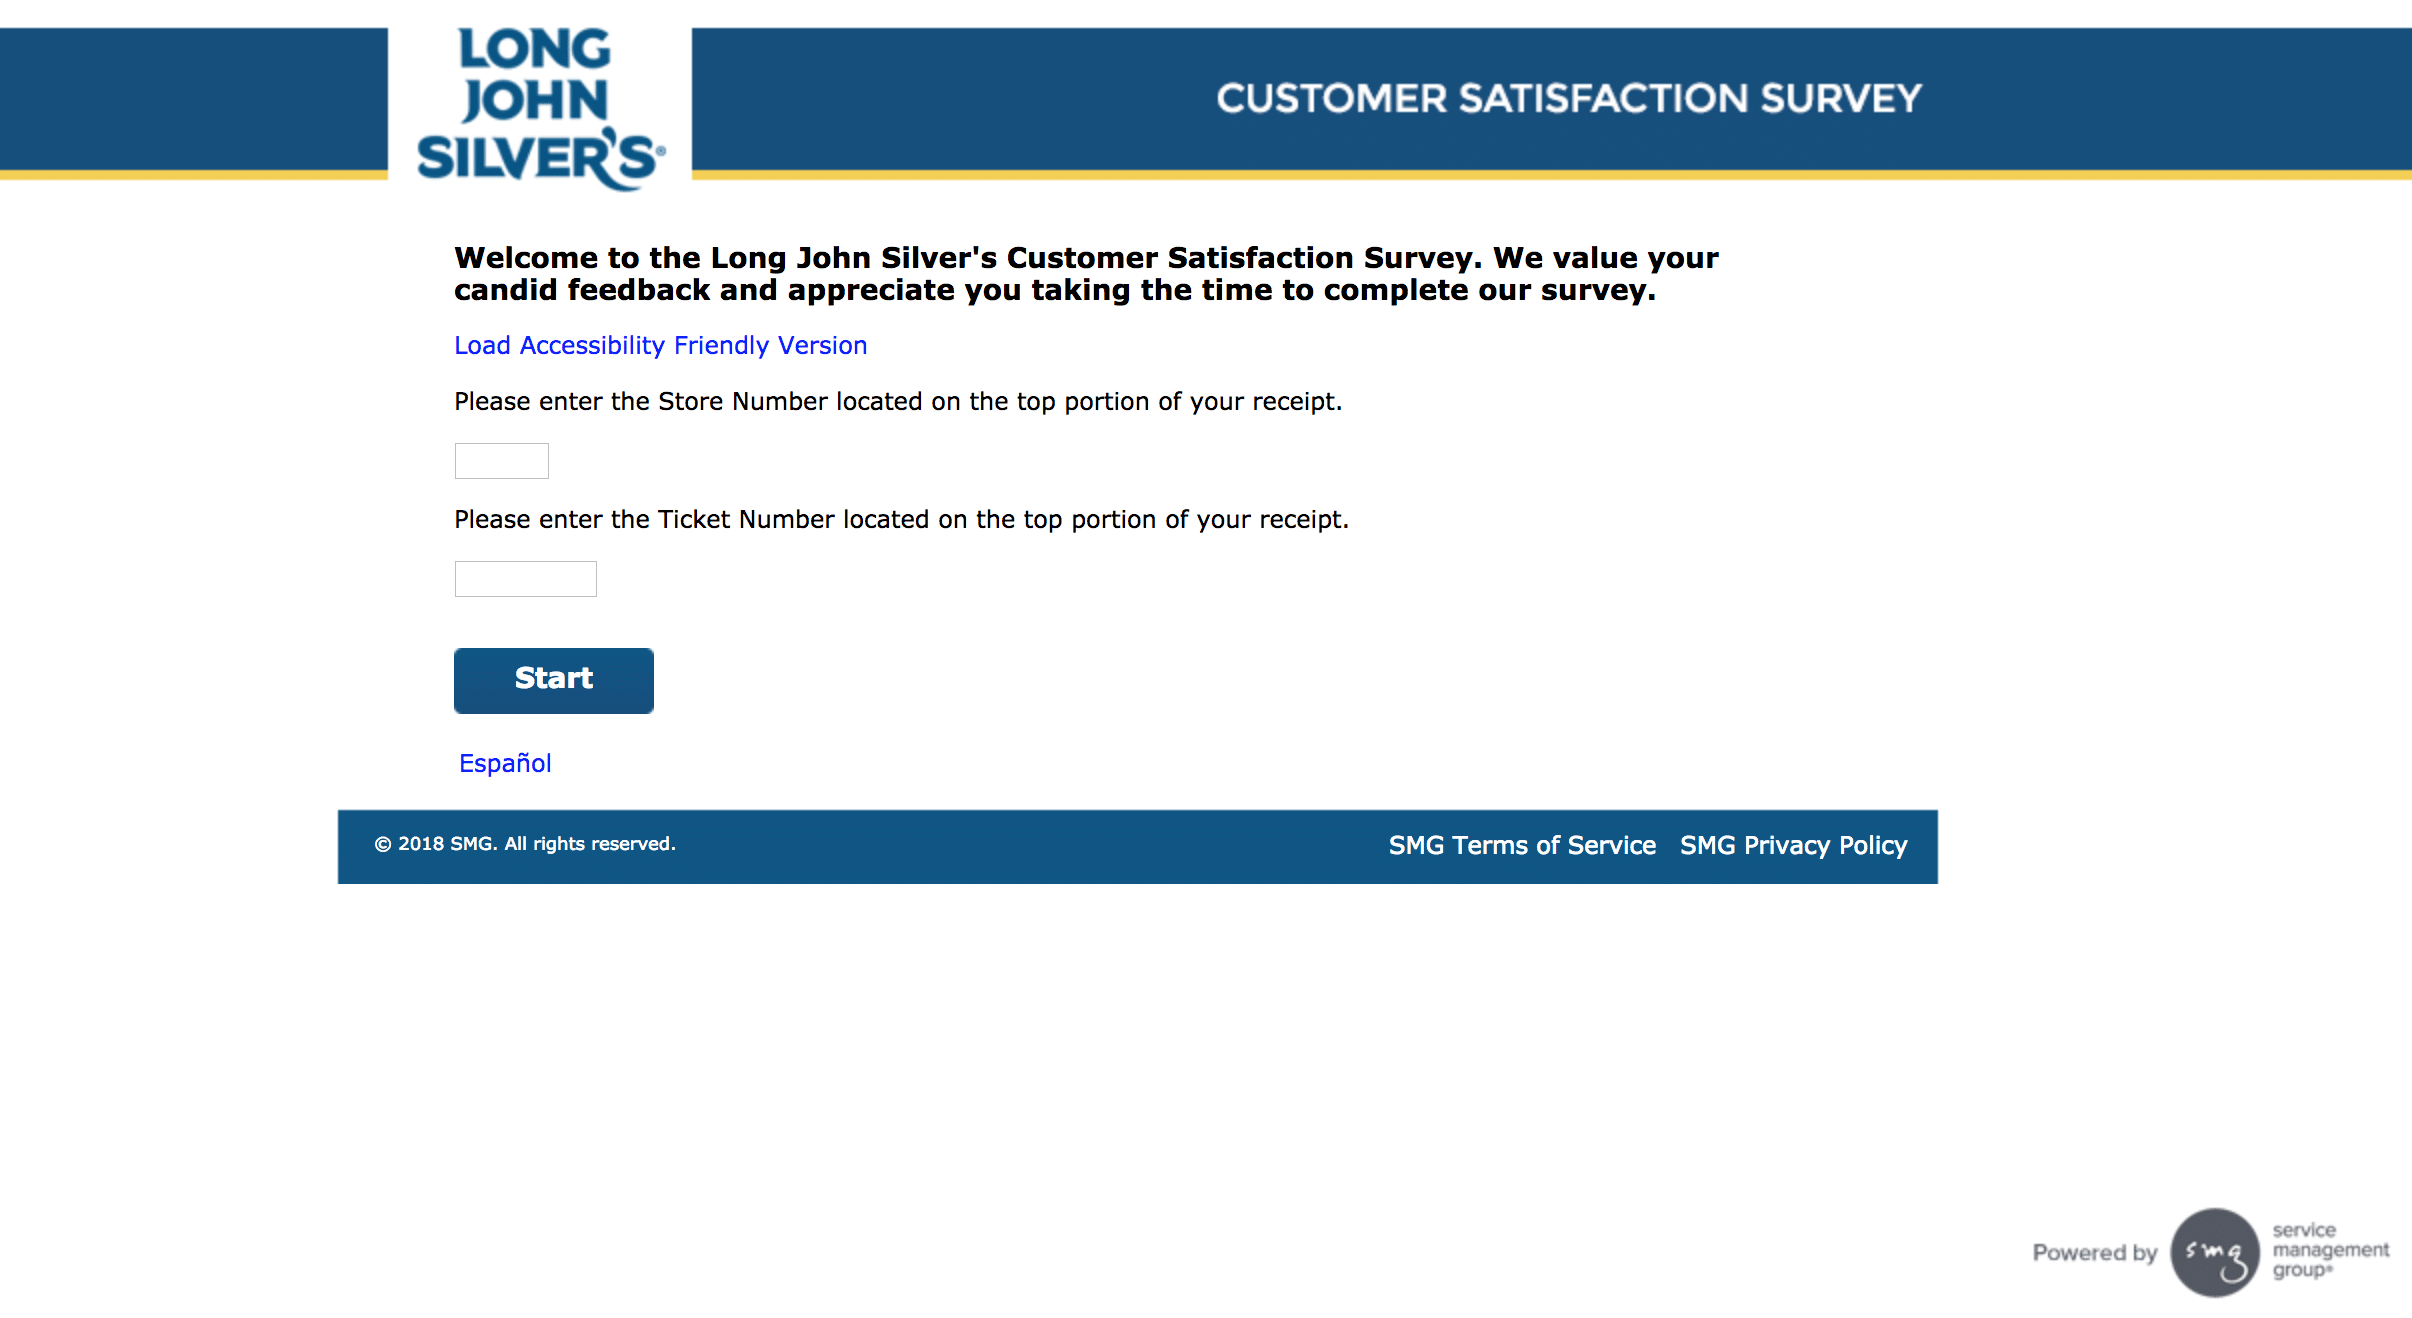 Steps for Completing the Long John Silver's Customer Experience Survey